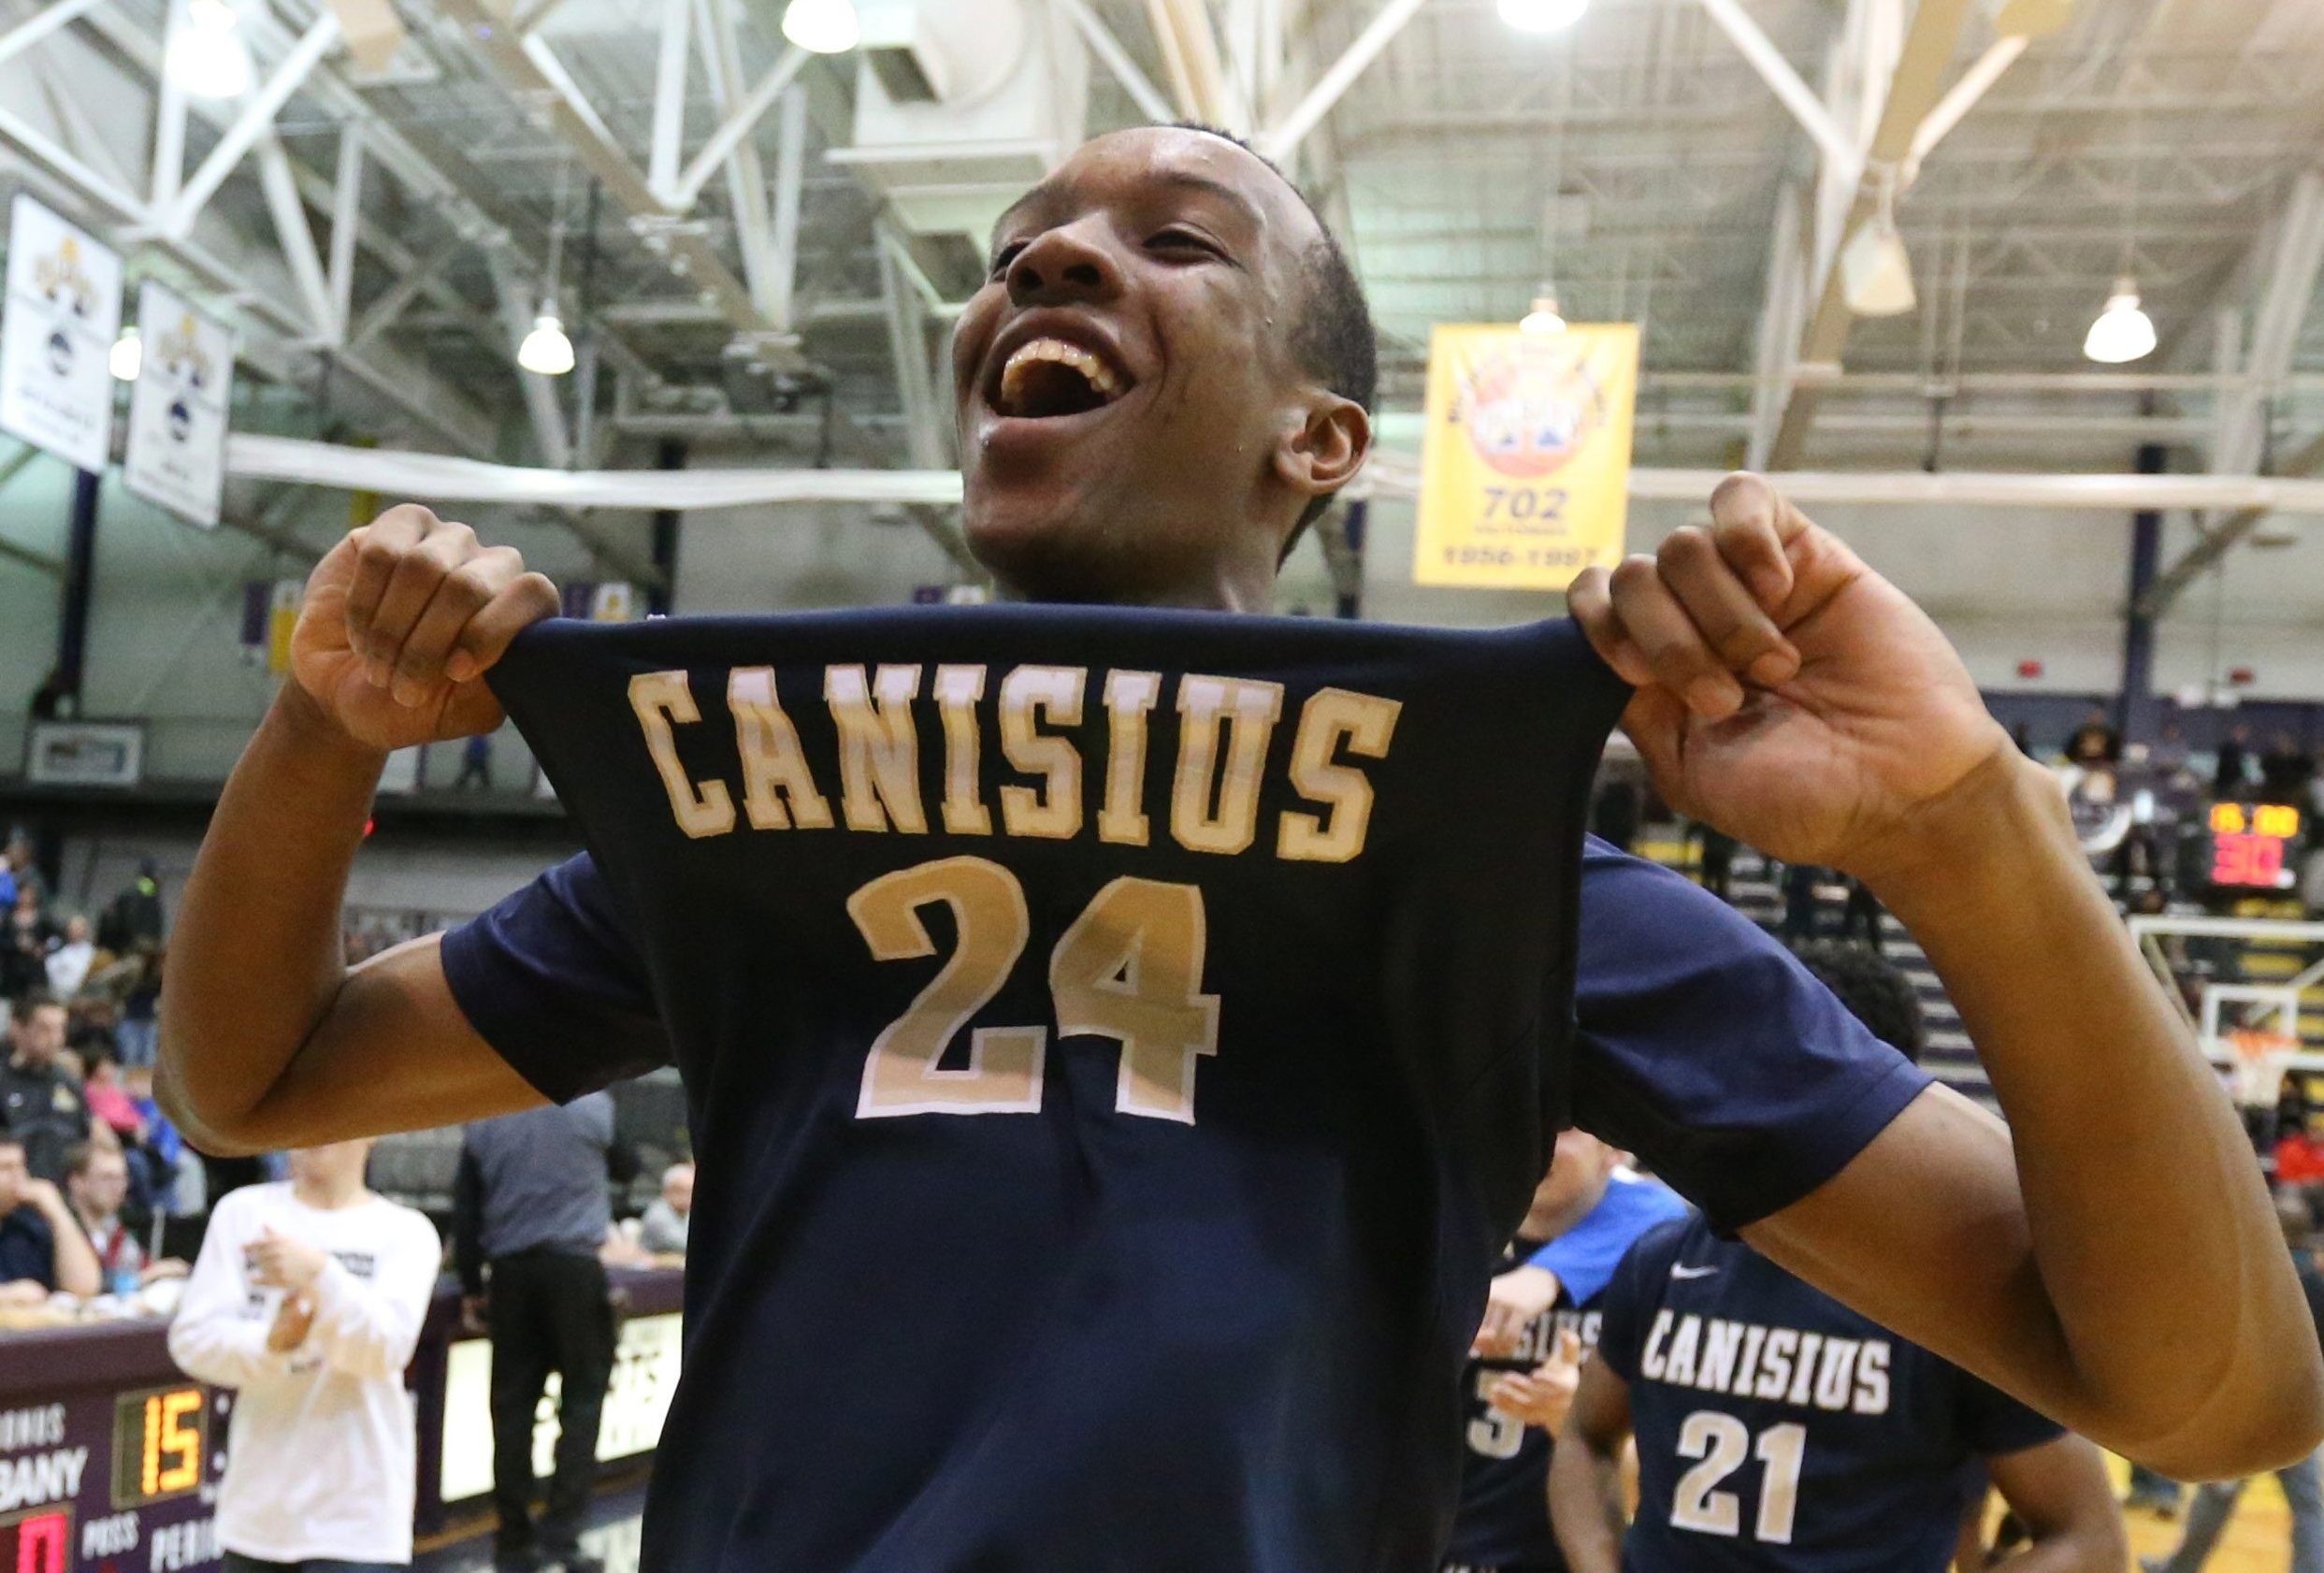 Canisius is among the area teams that have reached the end-of-season New York State Federation Tournament of Champions event over the years, winning the Class A title in 2015. (James P. McCoy/Buffalo News file photo)